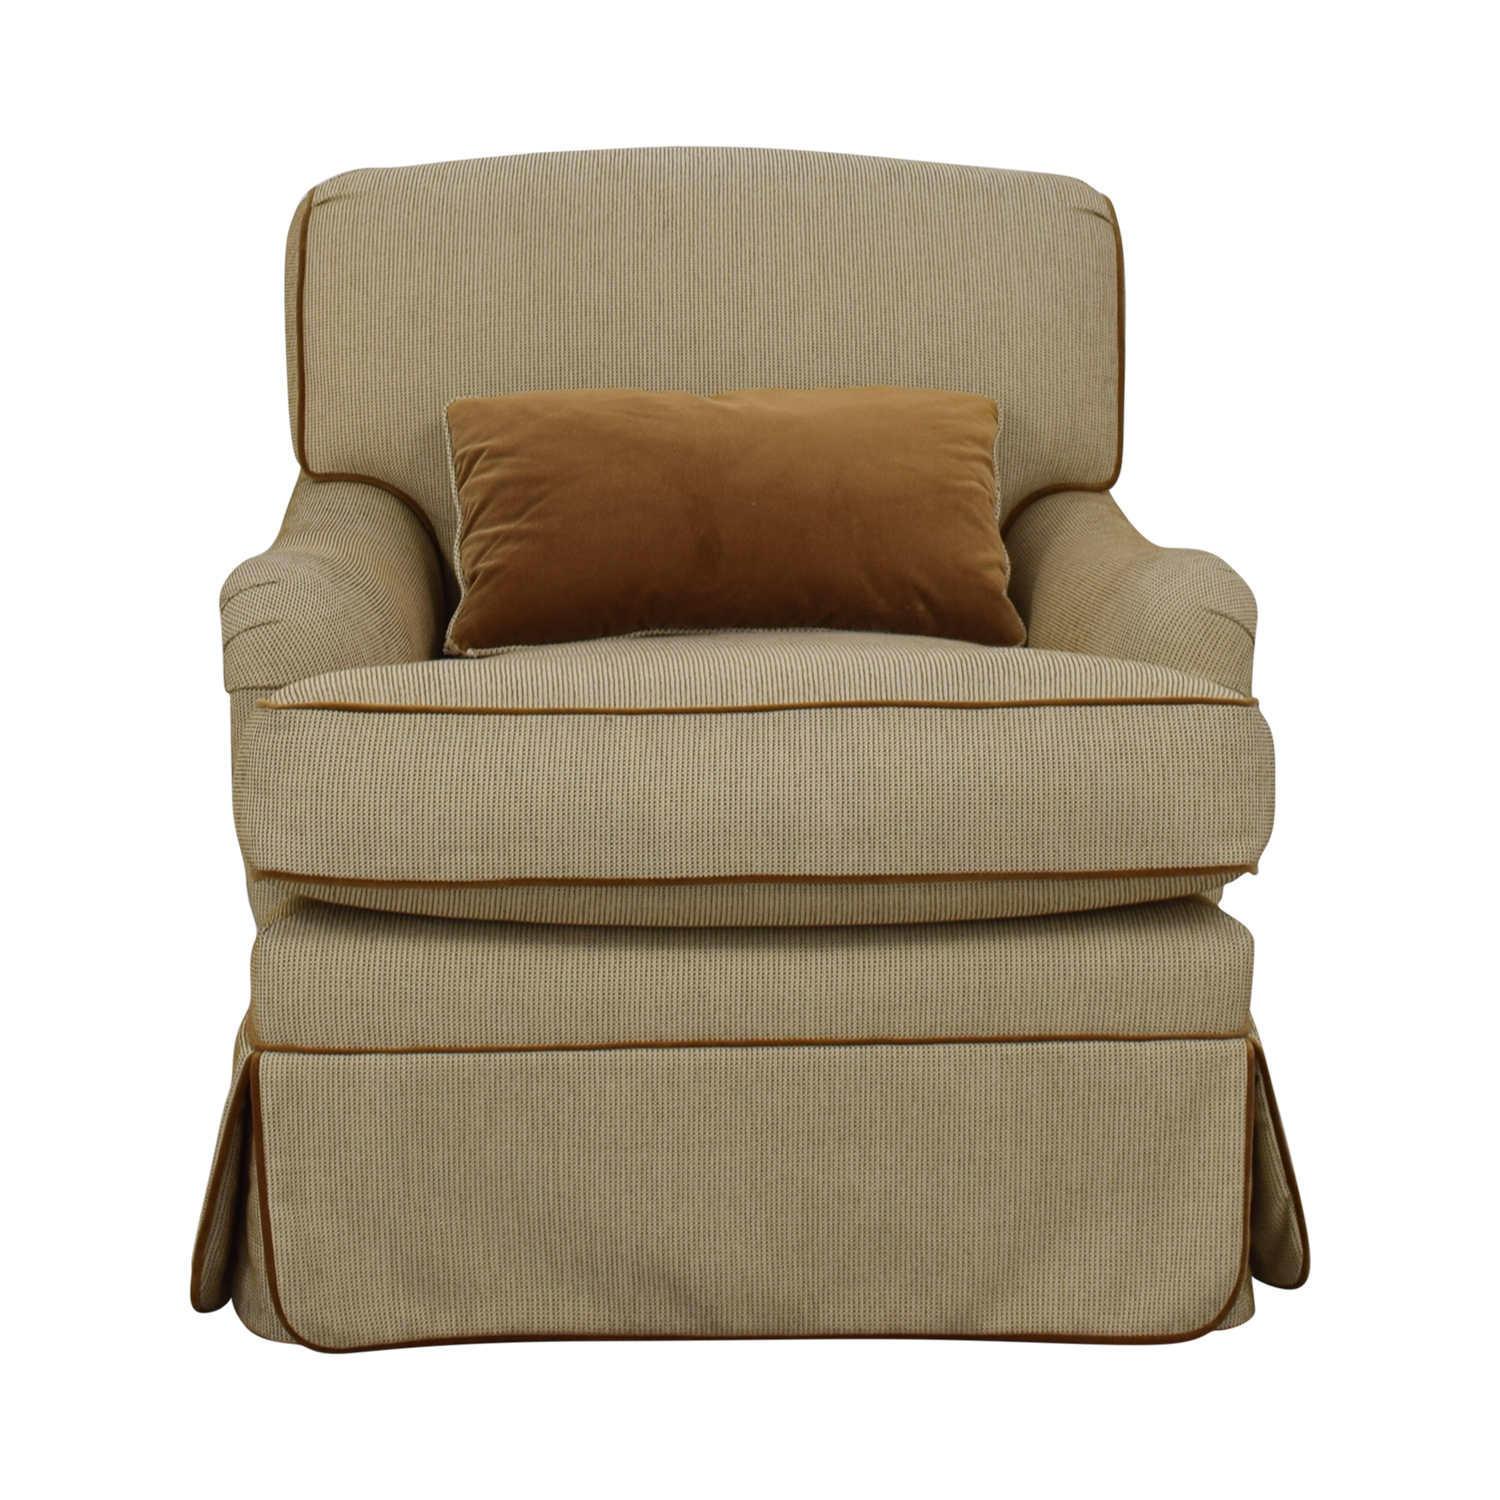 shop Beige Skirted Upholstered Accent Chair  Chairs